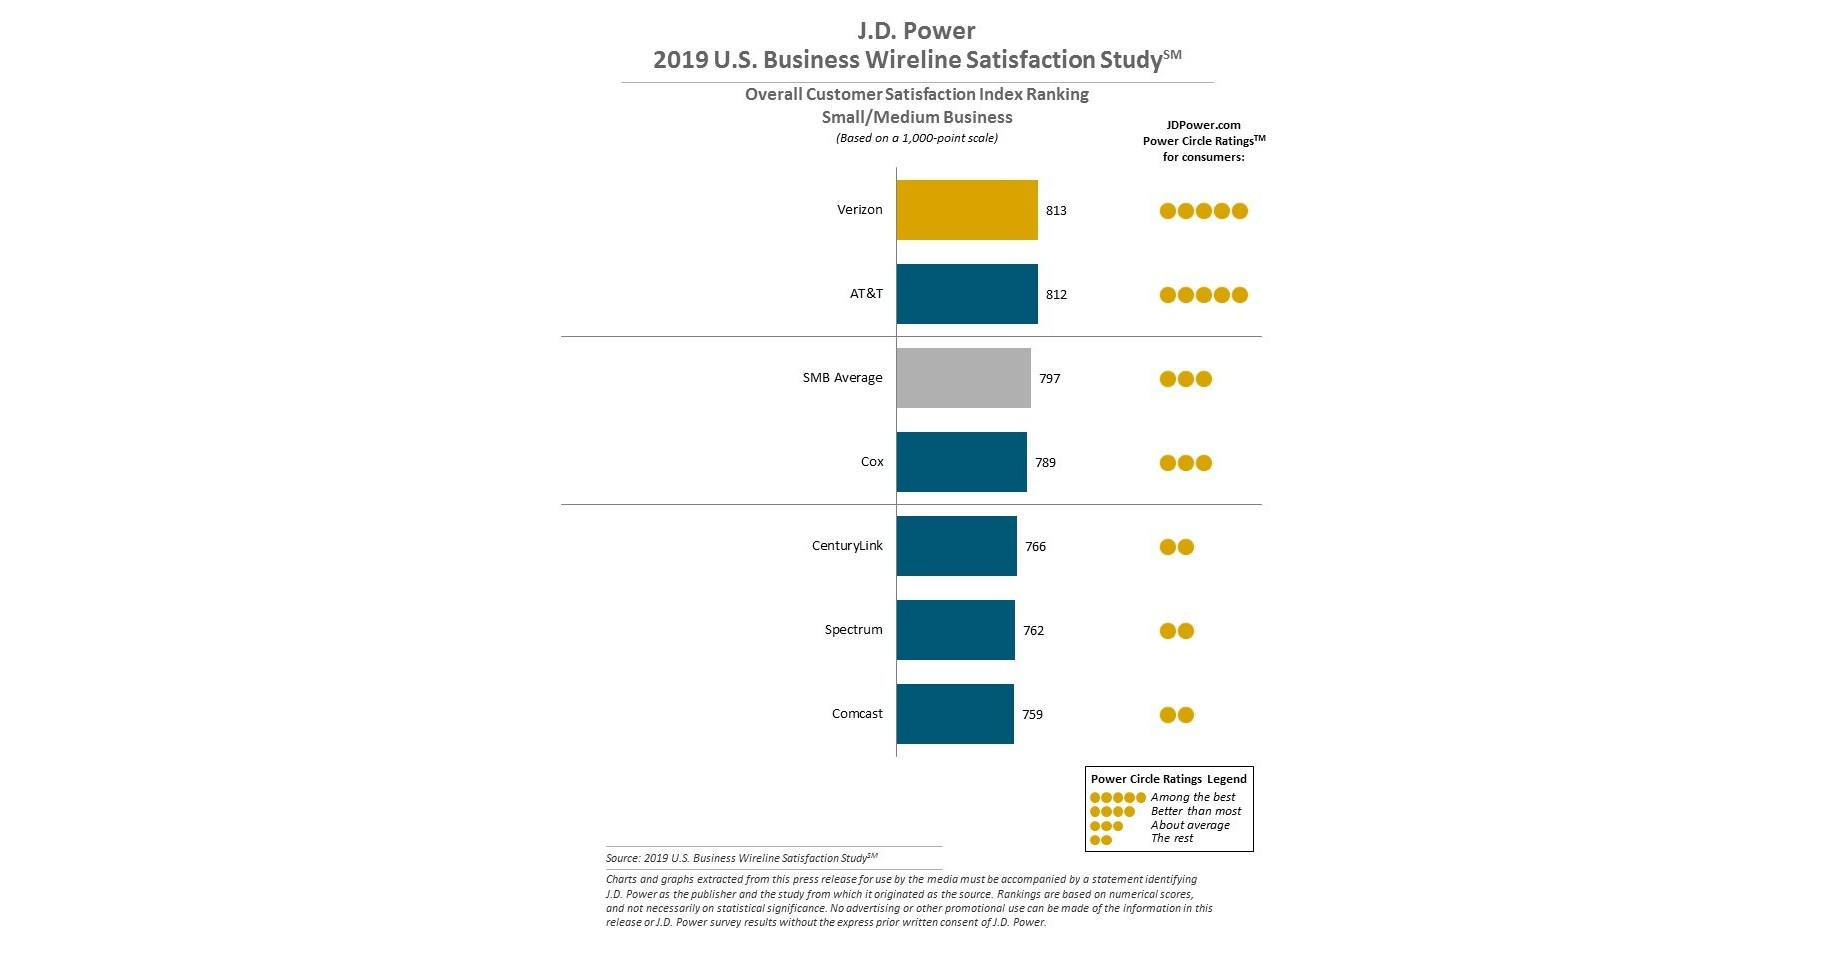 Satisfaction Gap Between Large and Small Business Wireline Customers